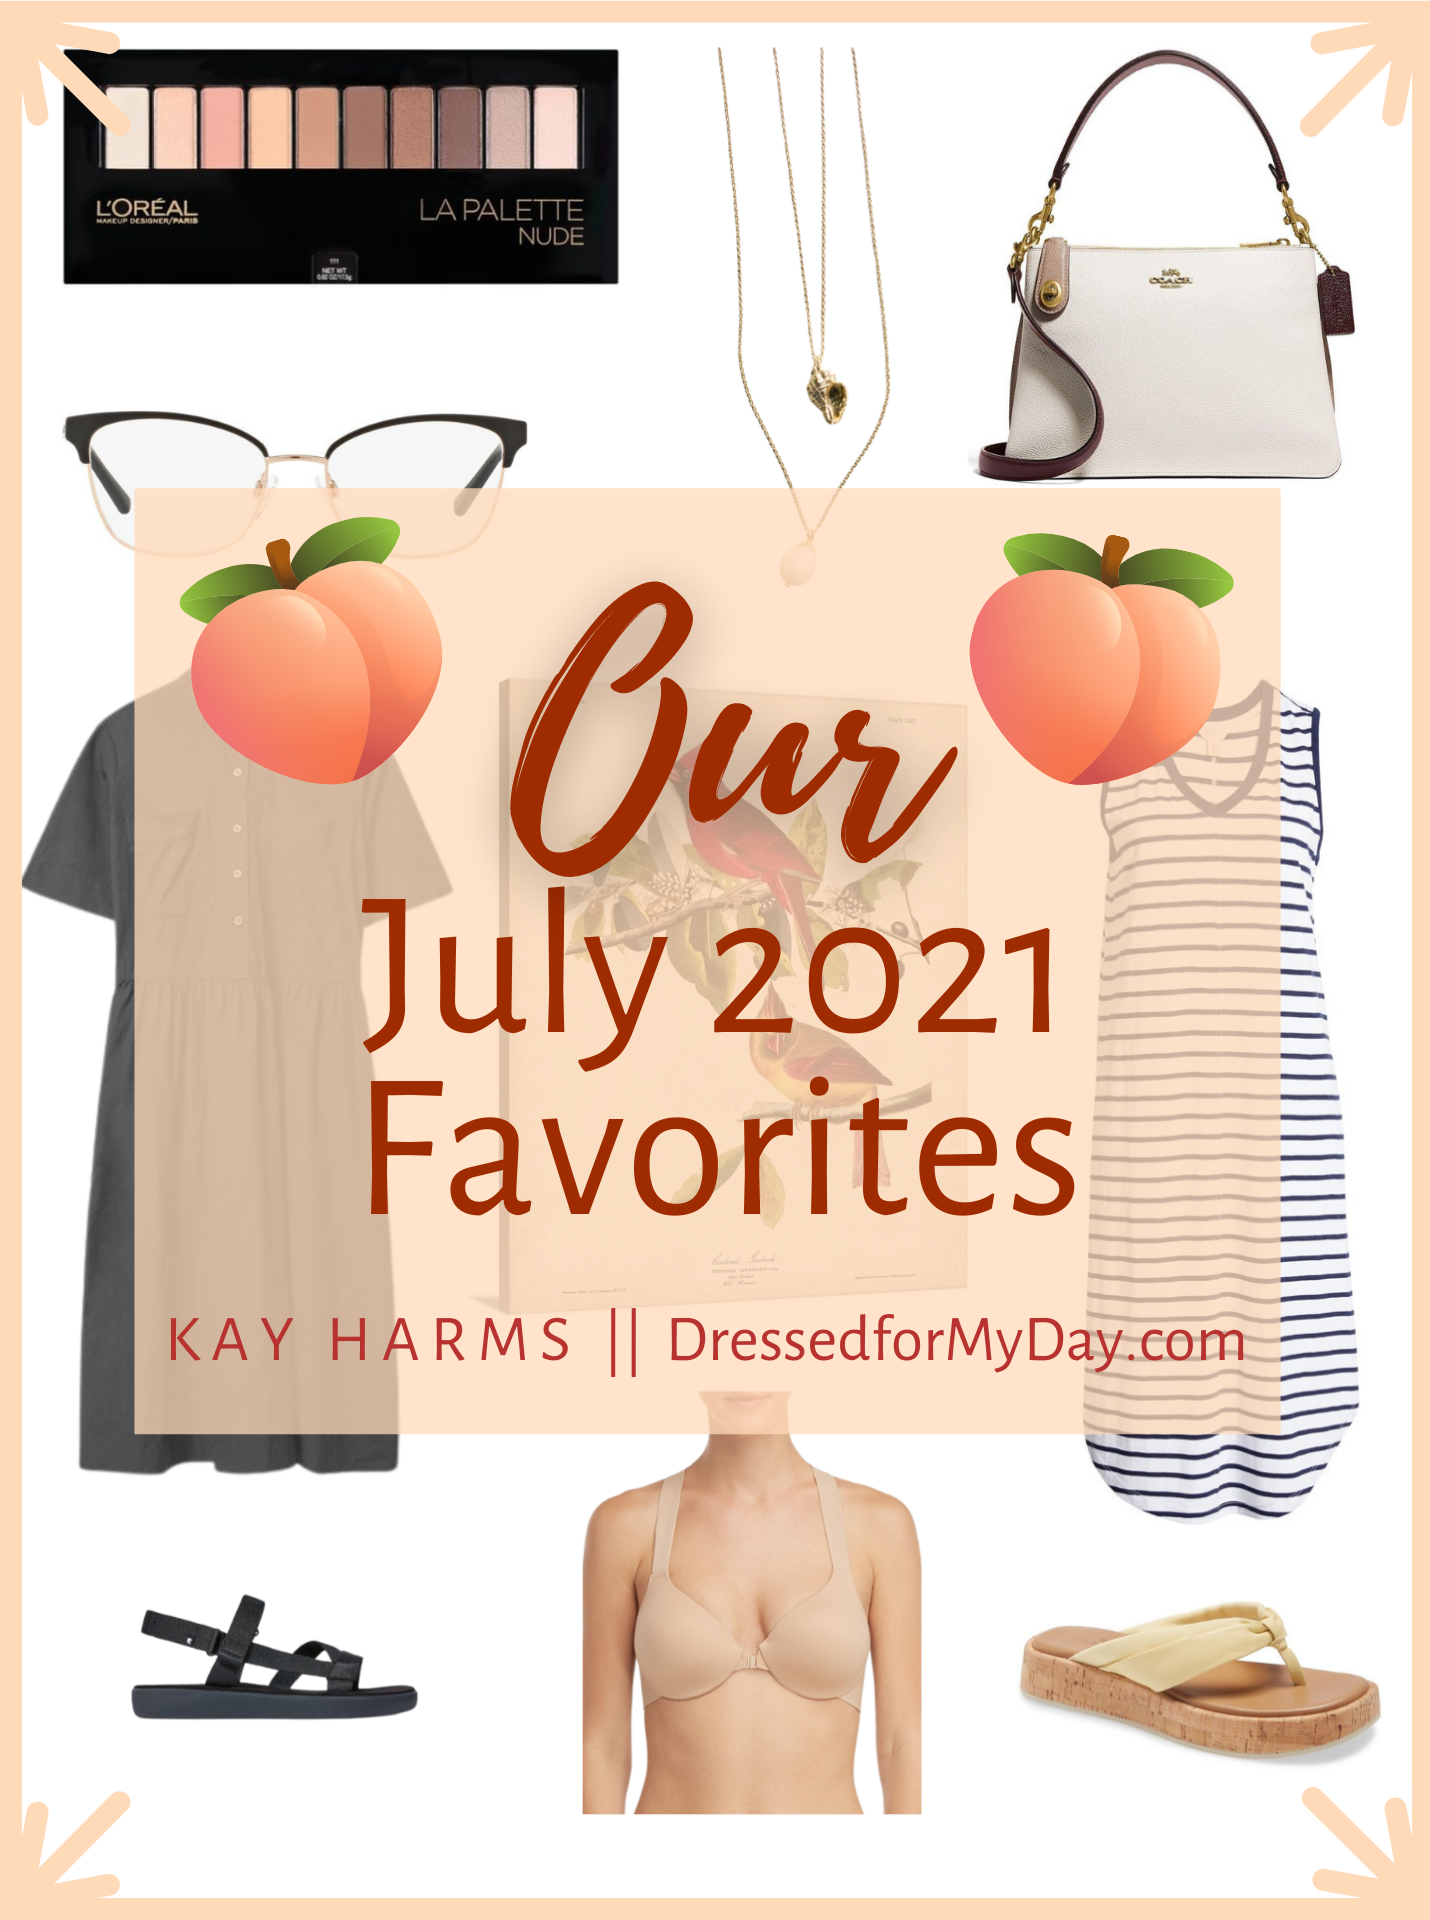 Our July 2021 Favorites